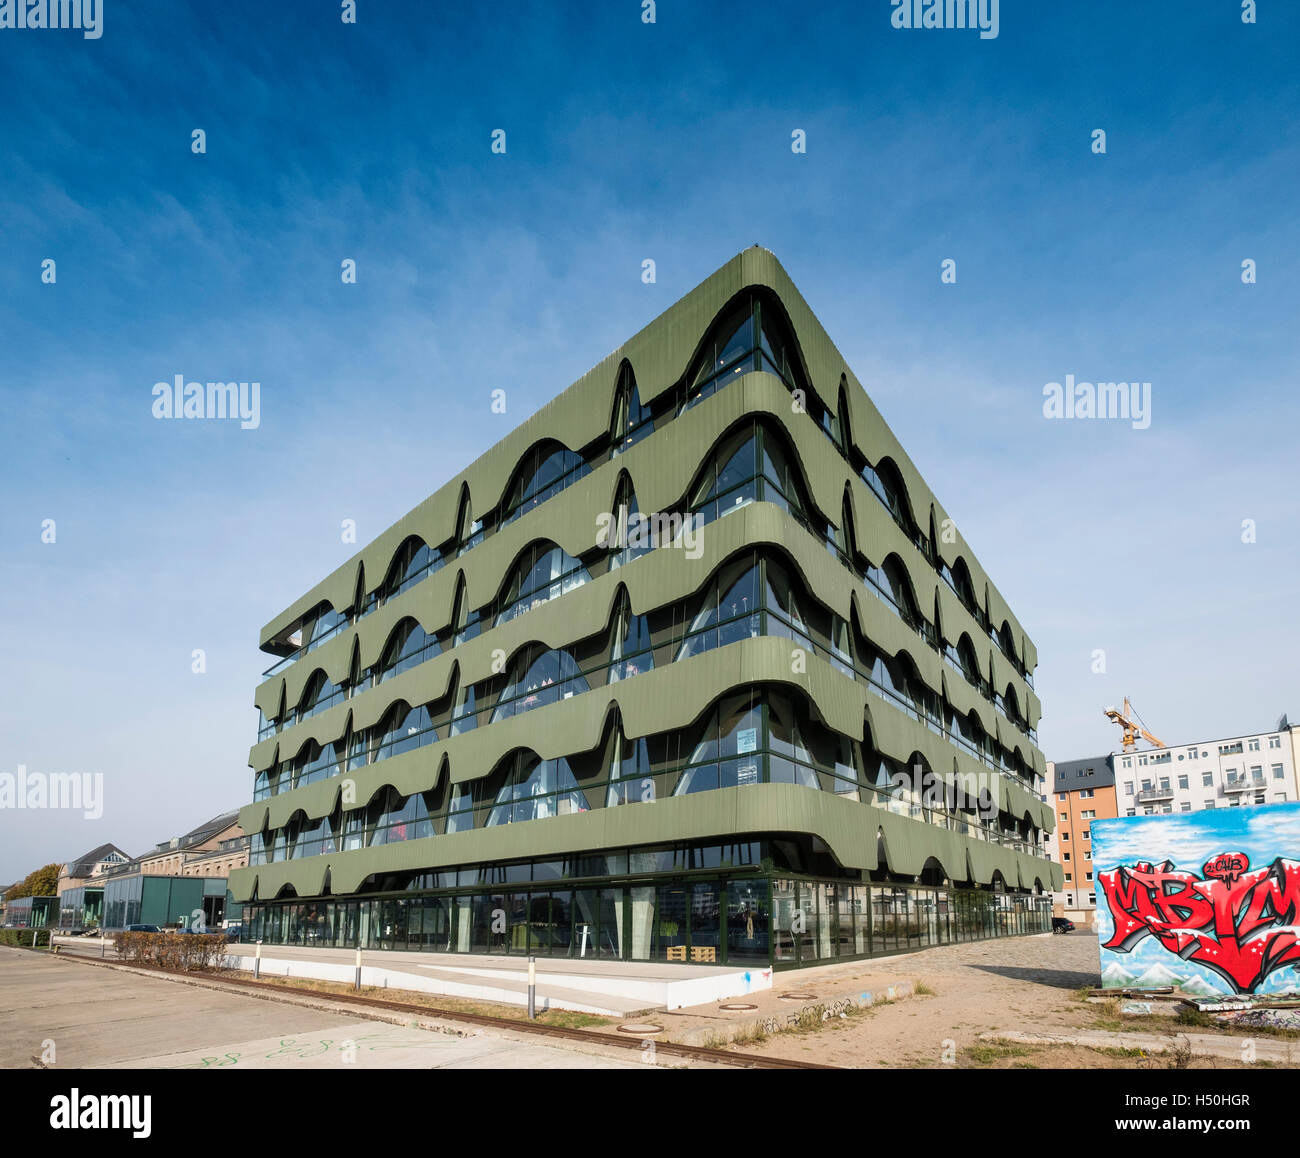 Fashioncenter Labels 2 building on Osthafen , East Harbour along River Spree in Berlin , Germany - Stock Image